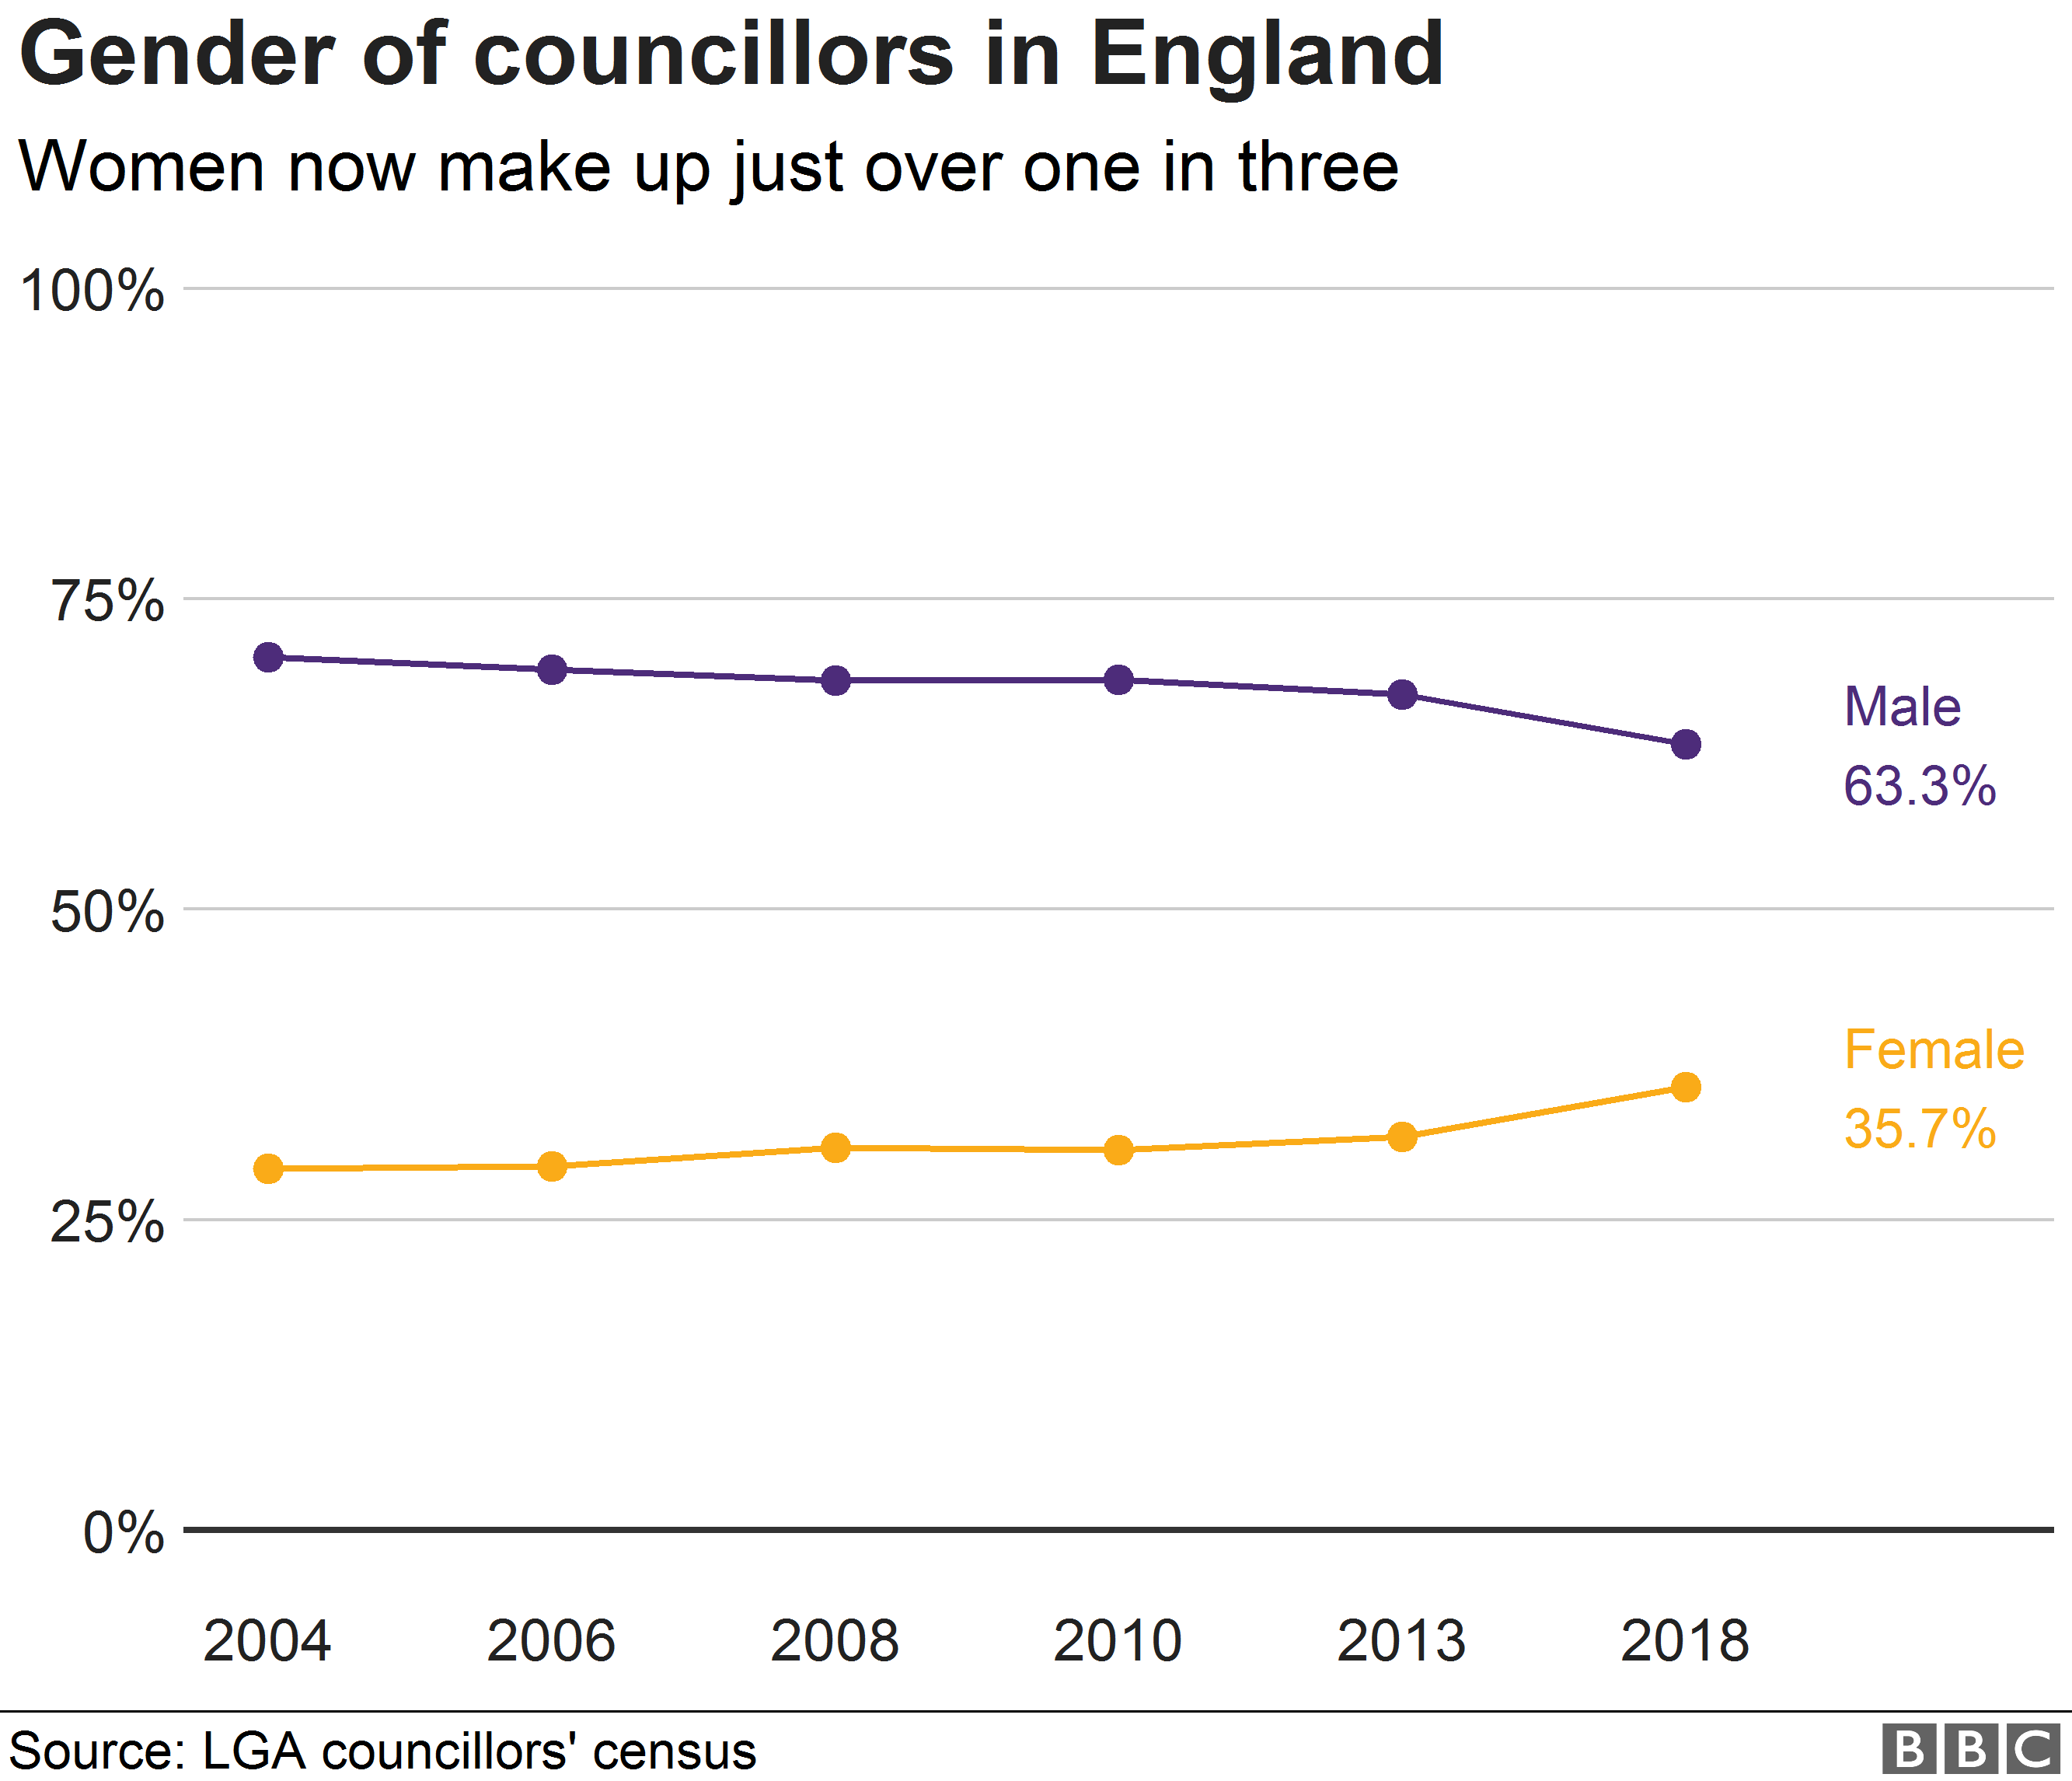 Chart showing the gender of councillors in England